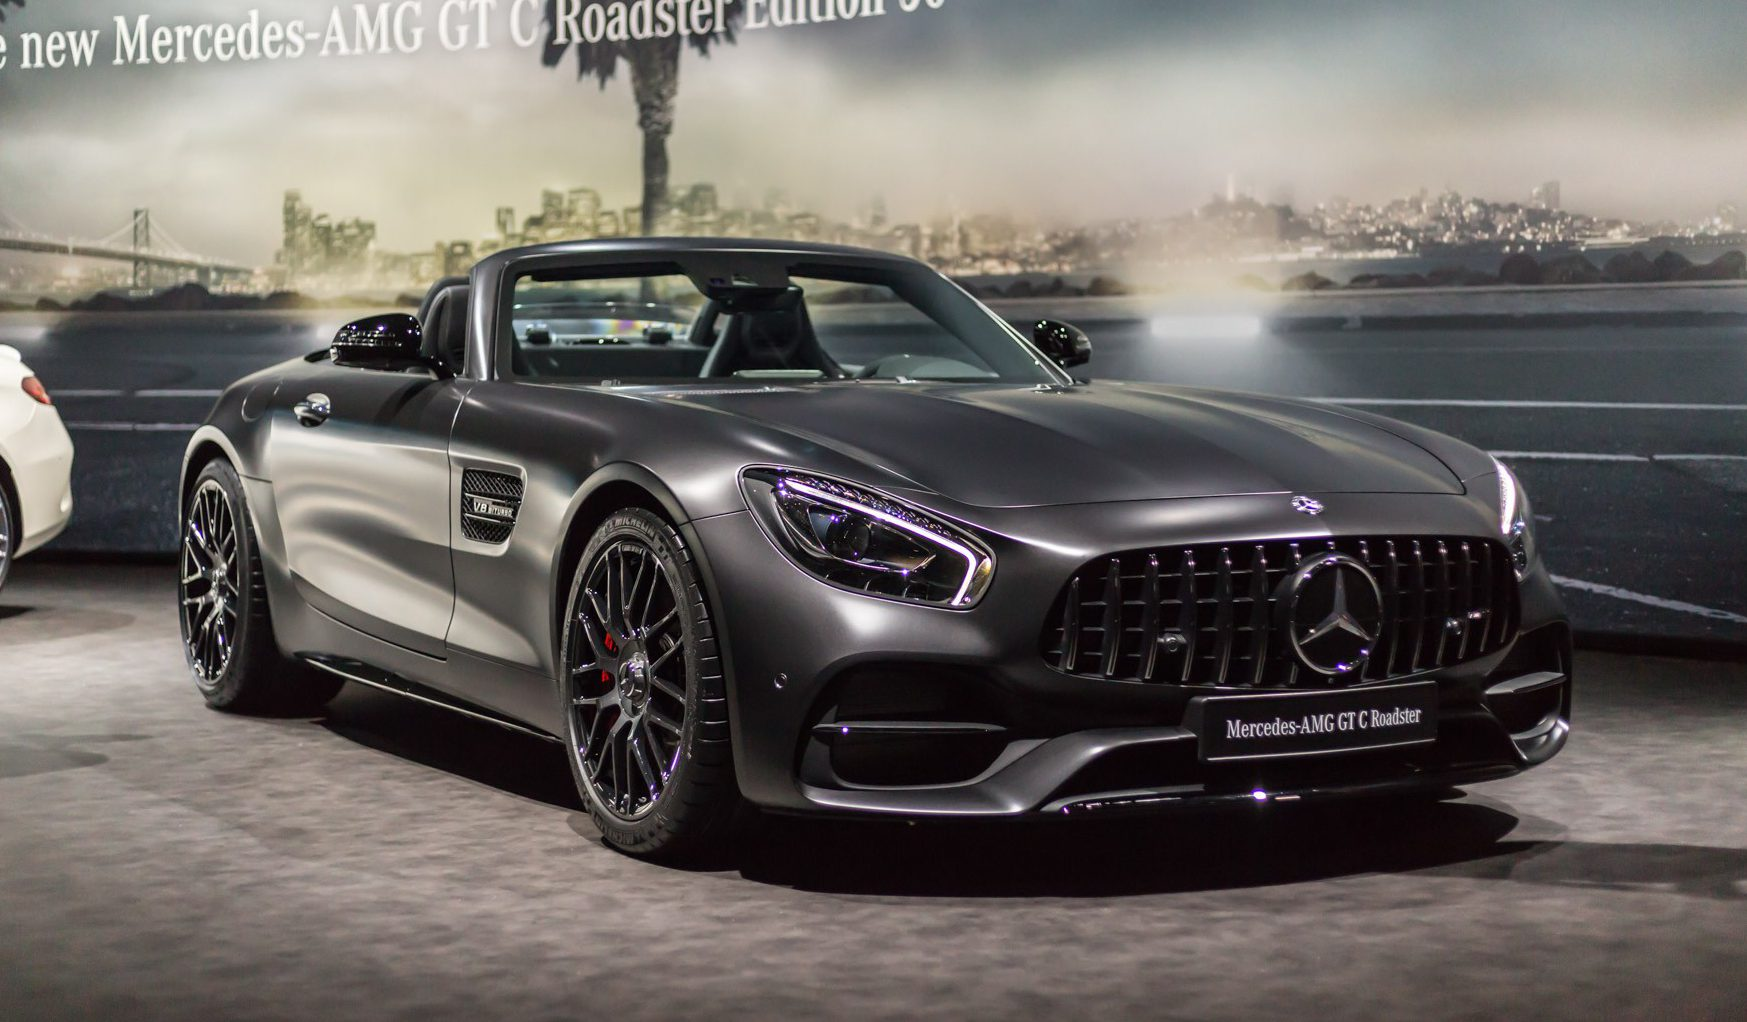 Mercedes Amg Gt C Roadster 2017 Geneva 2017 Mercedes Amg 50th Anniversary Editions Gtspirit